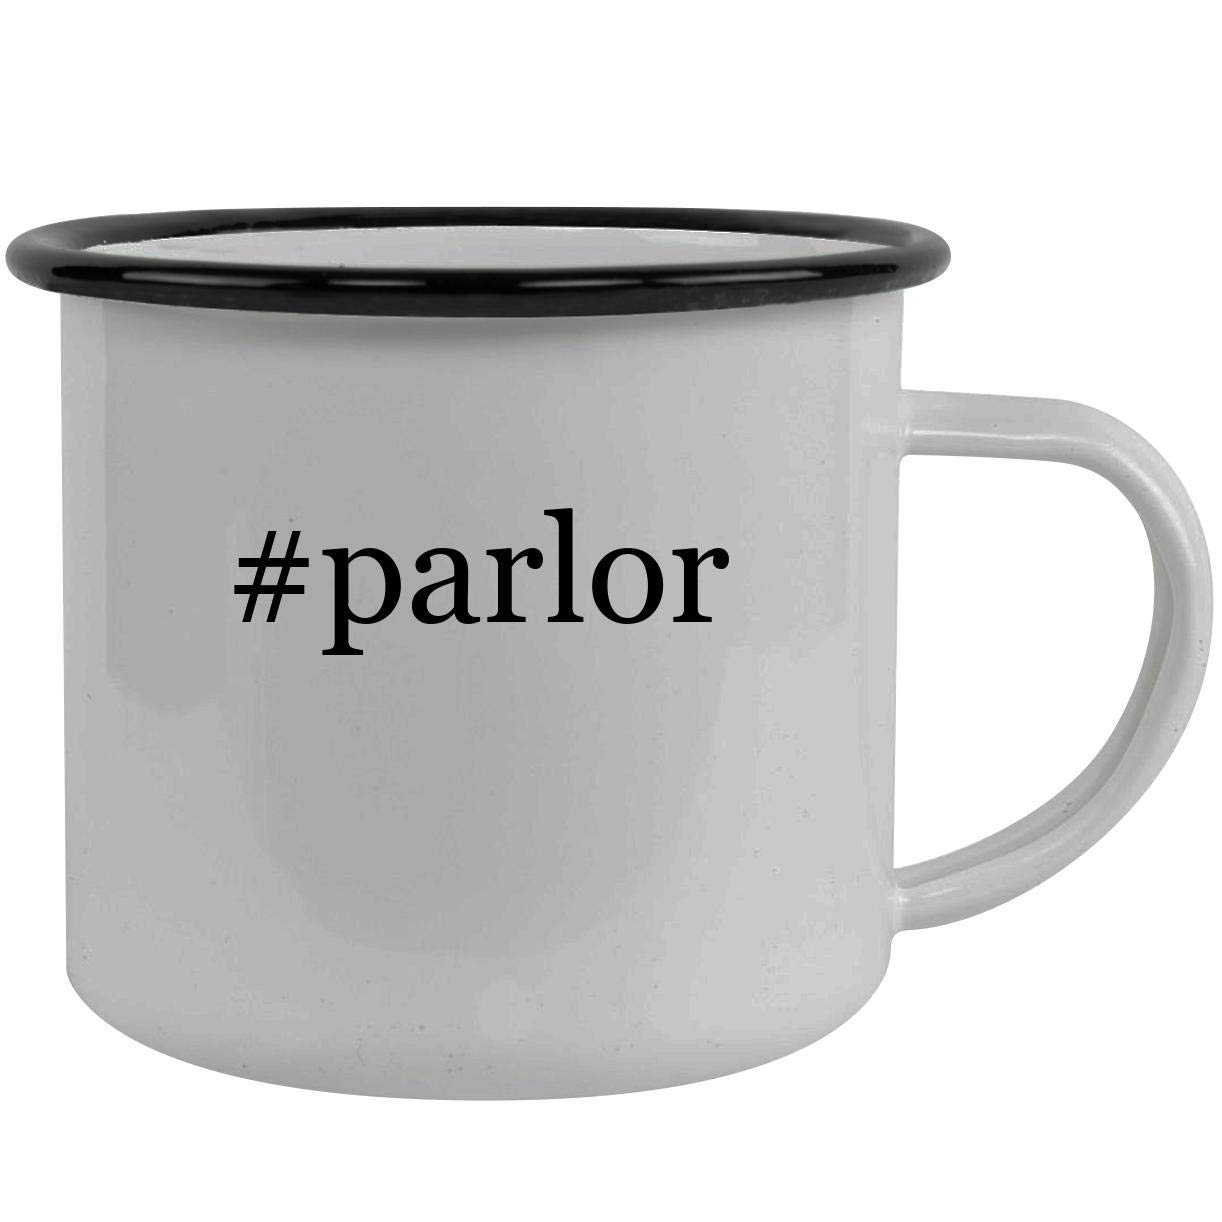 #parlor - Stainless Steel Hashtag 12oz Camping Mug, Black by Molandra Products